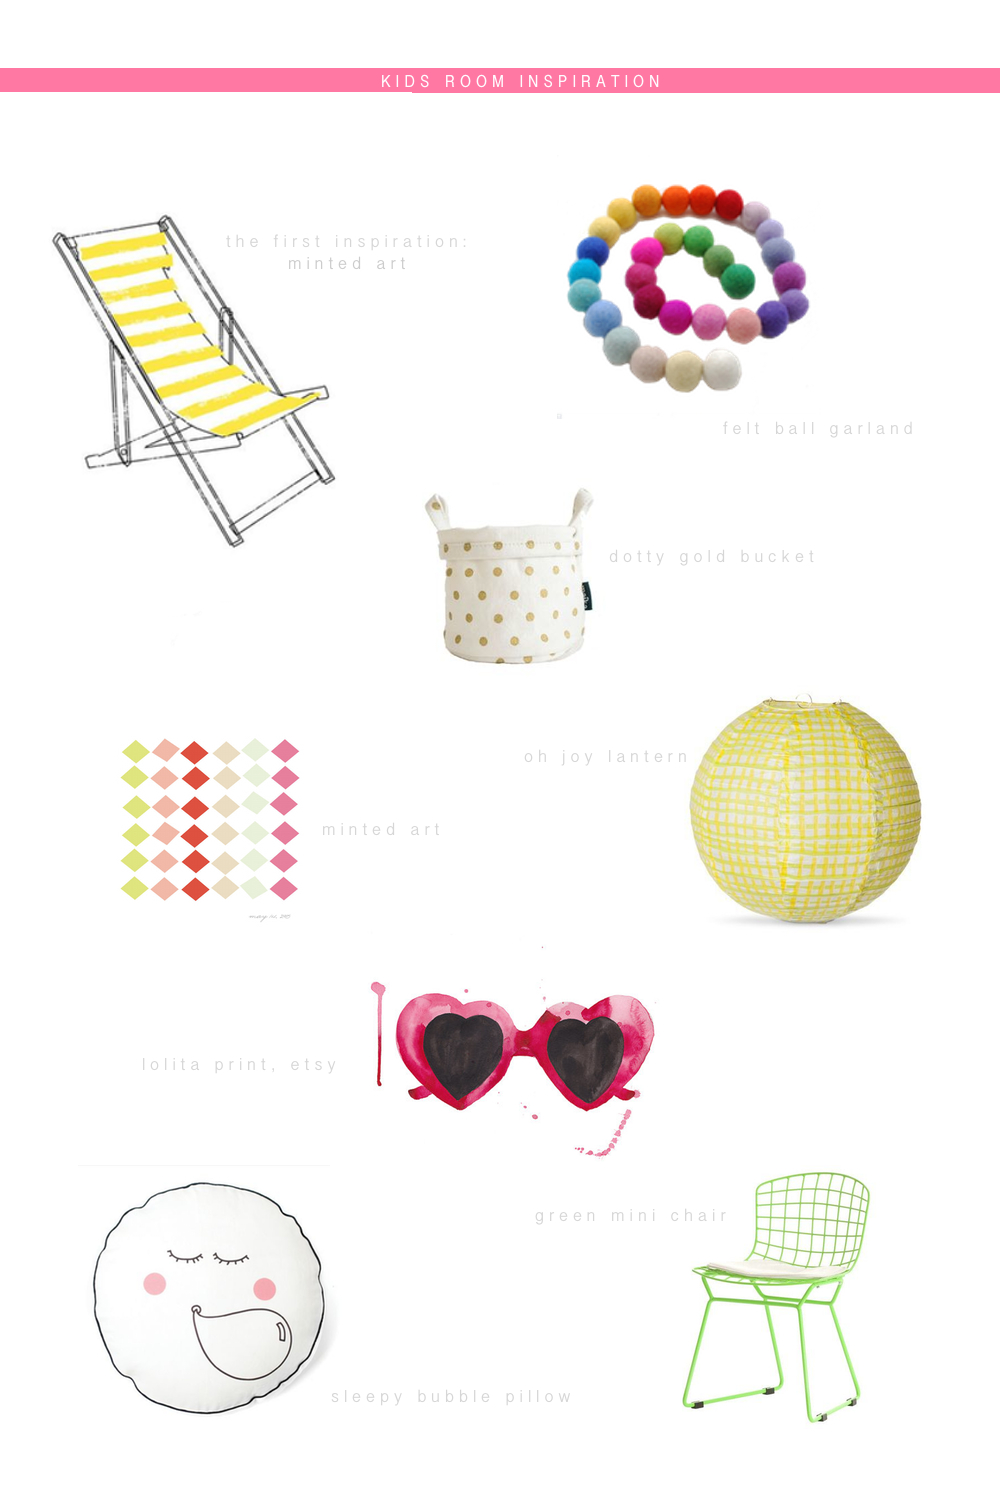 minted chair  |  felt garland  |  dotty bucket  |  lantern  |  minted print  |  sunglasses  |  chair  |  pillow